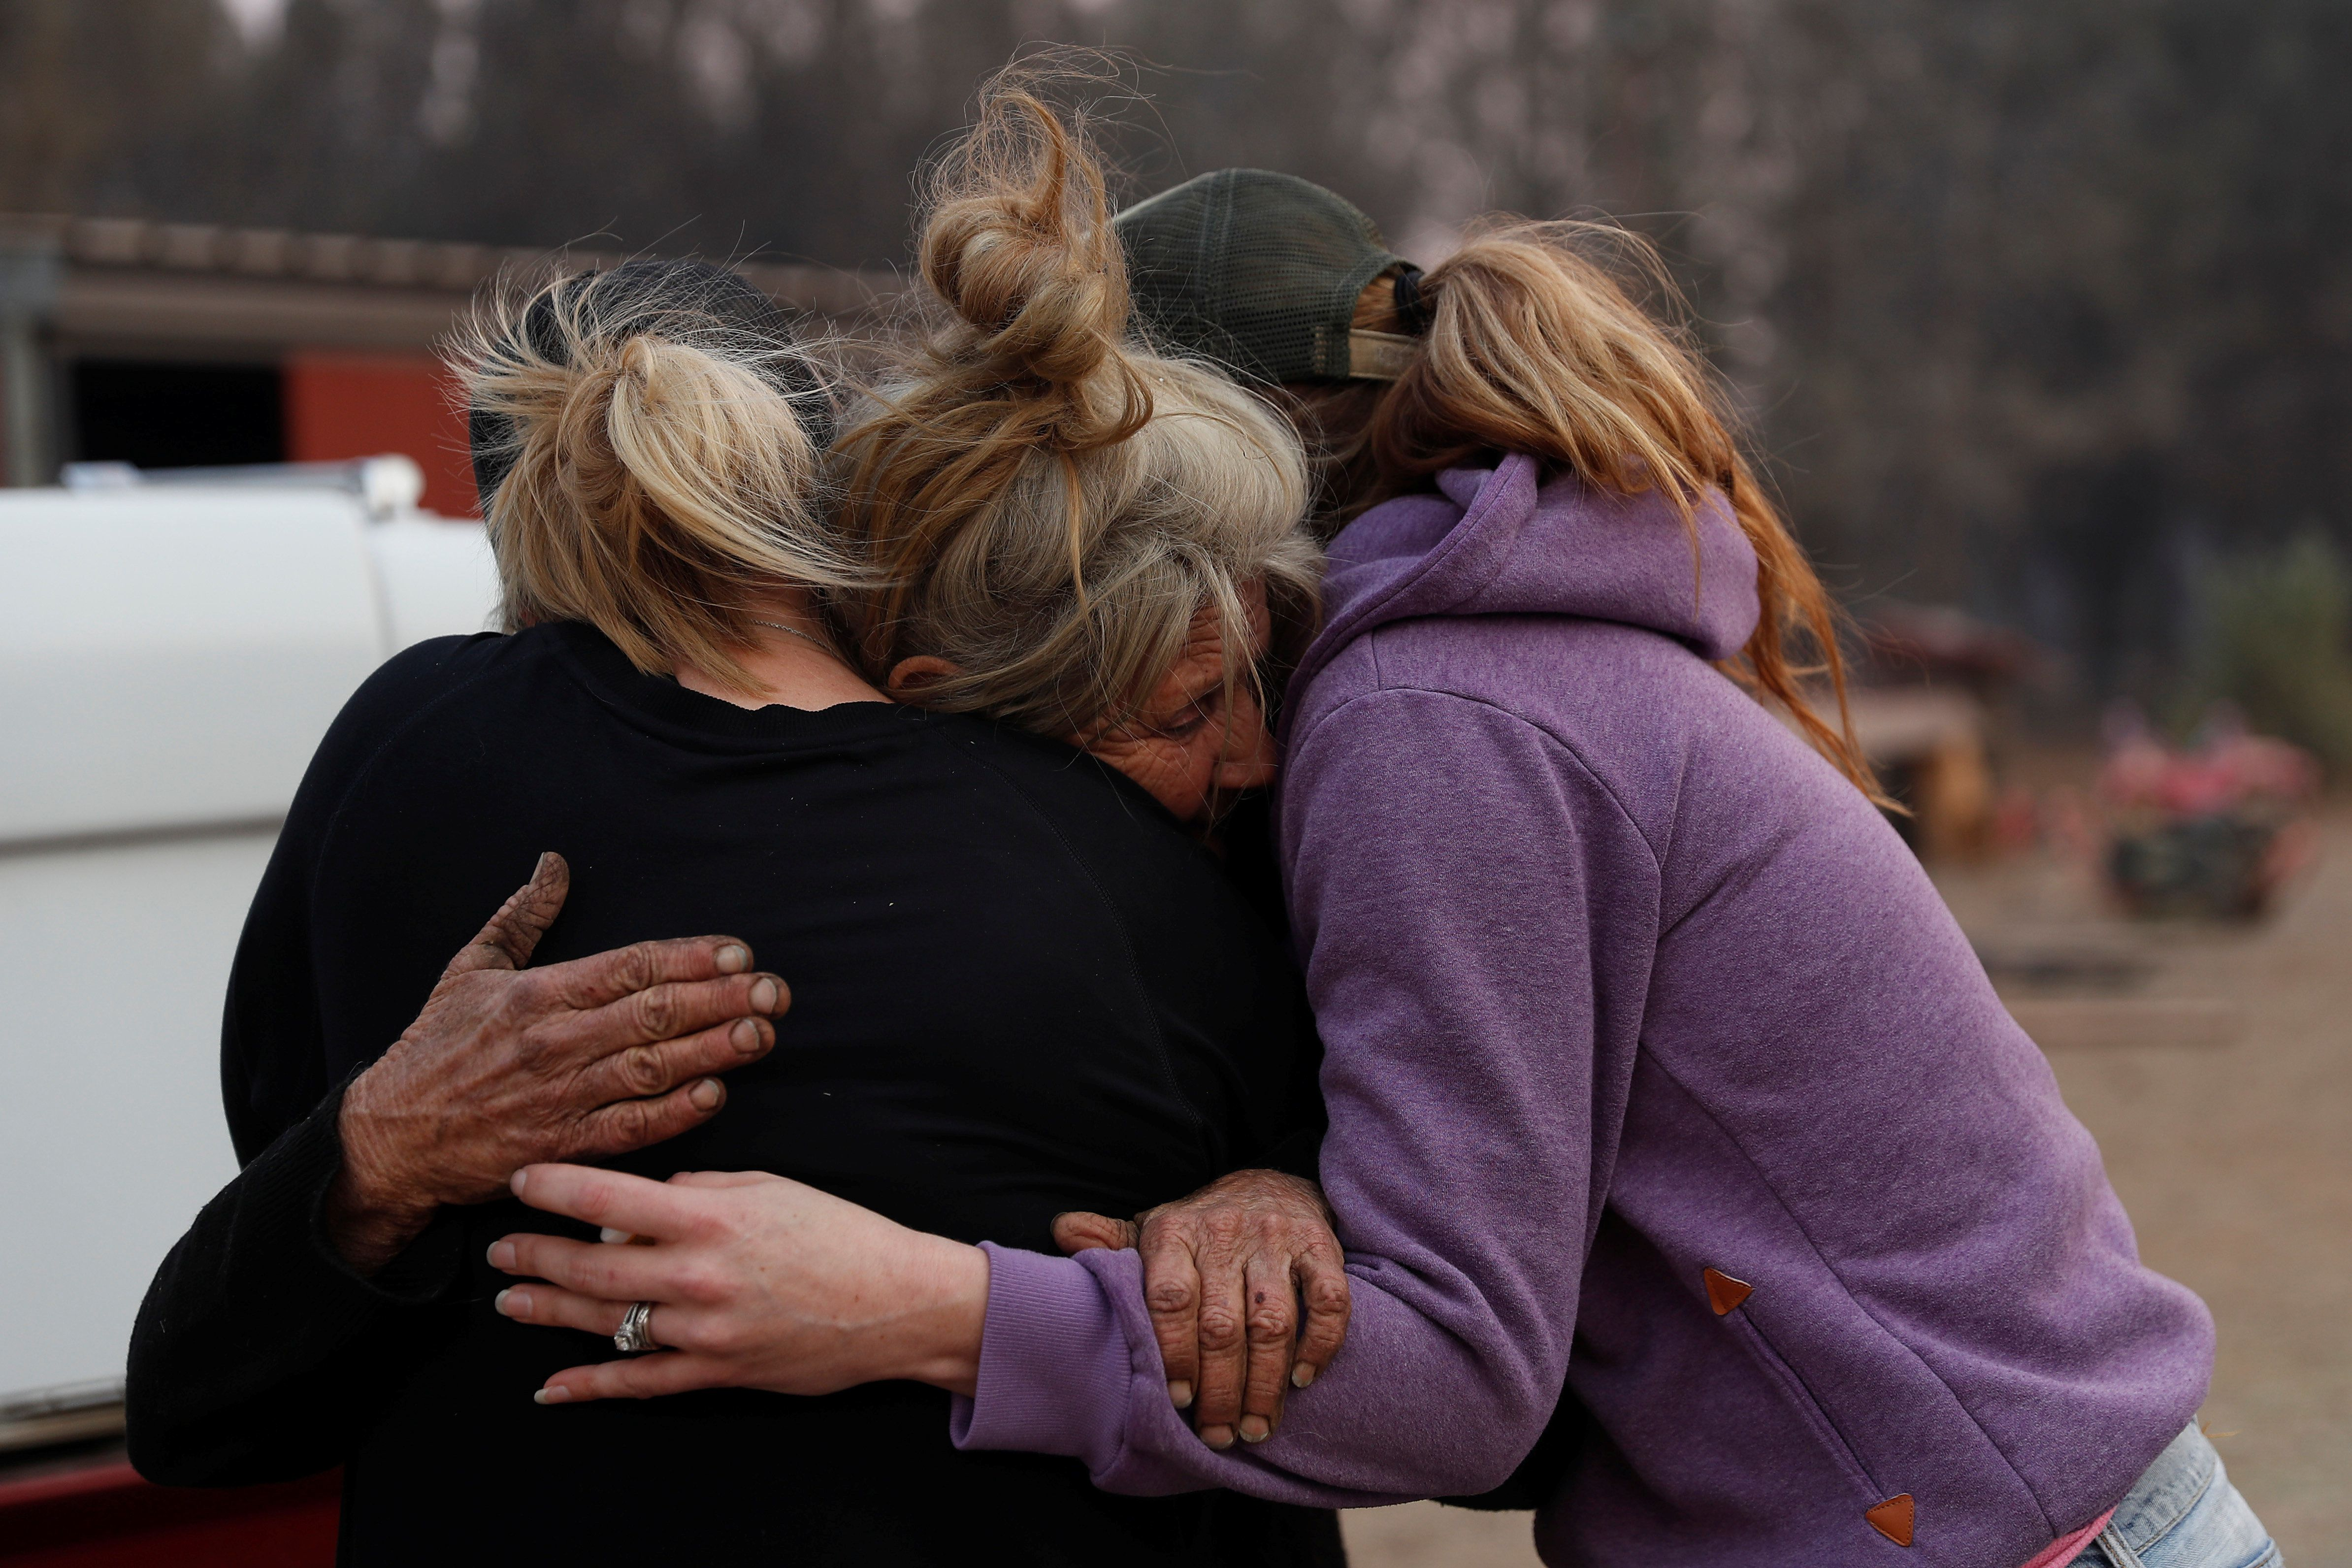 Cathy Fallon (C) who stayed behind to tend to her horses during the Camp Fire, embraces Shawna De Long (L) and April Smith who brought supplies for the horses in Paradise, California, U.S. November 11, 2018. REUTERS/Stephen Lam